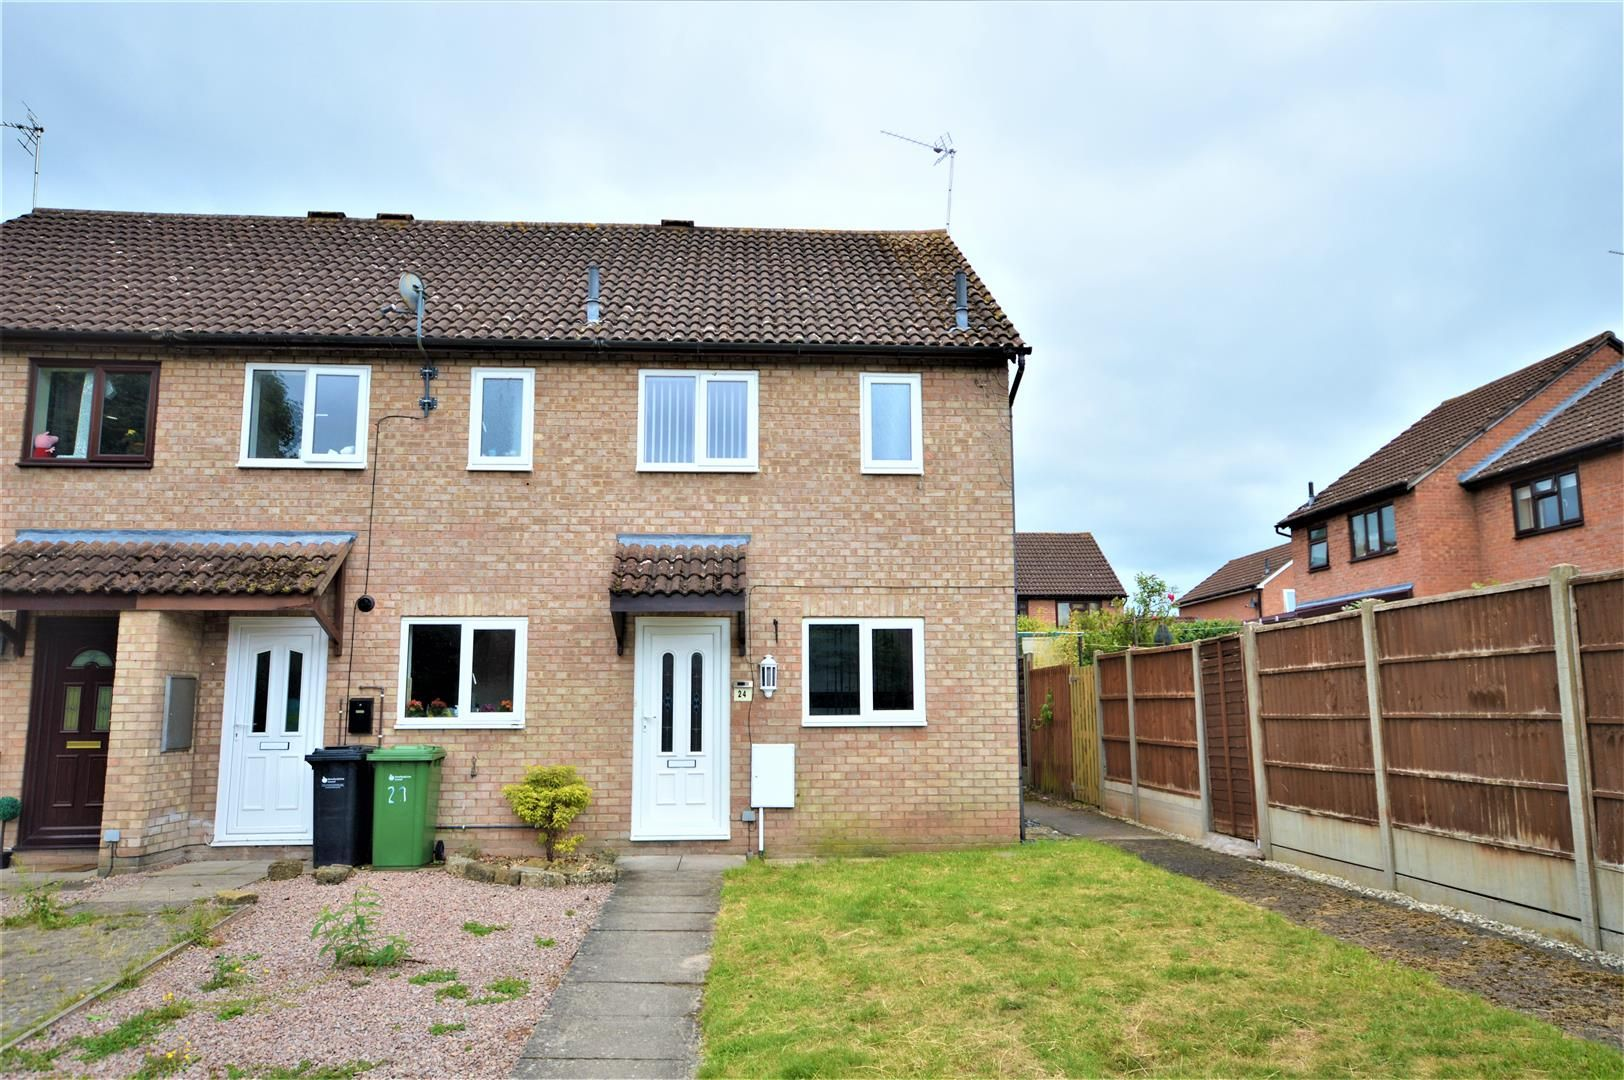 2 bed end-of-terrace for sale in Belmont  - Property Image 1